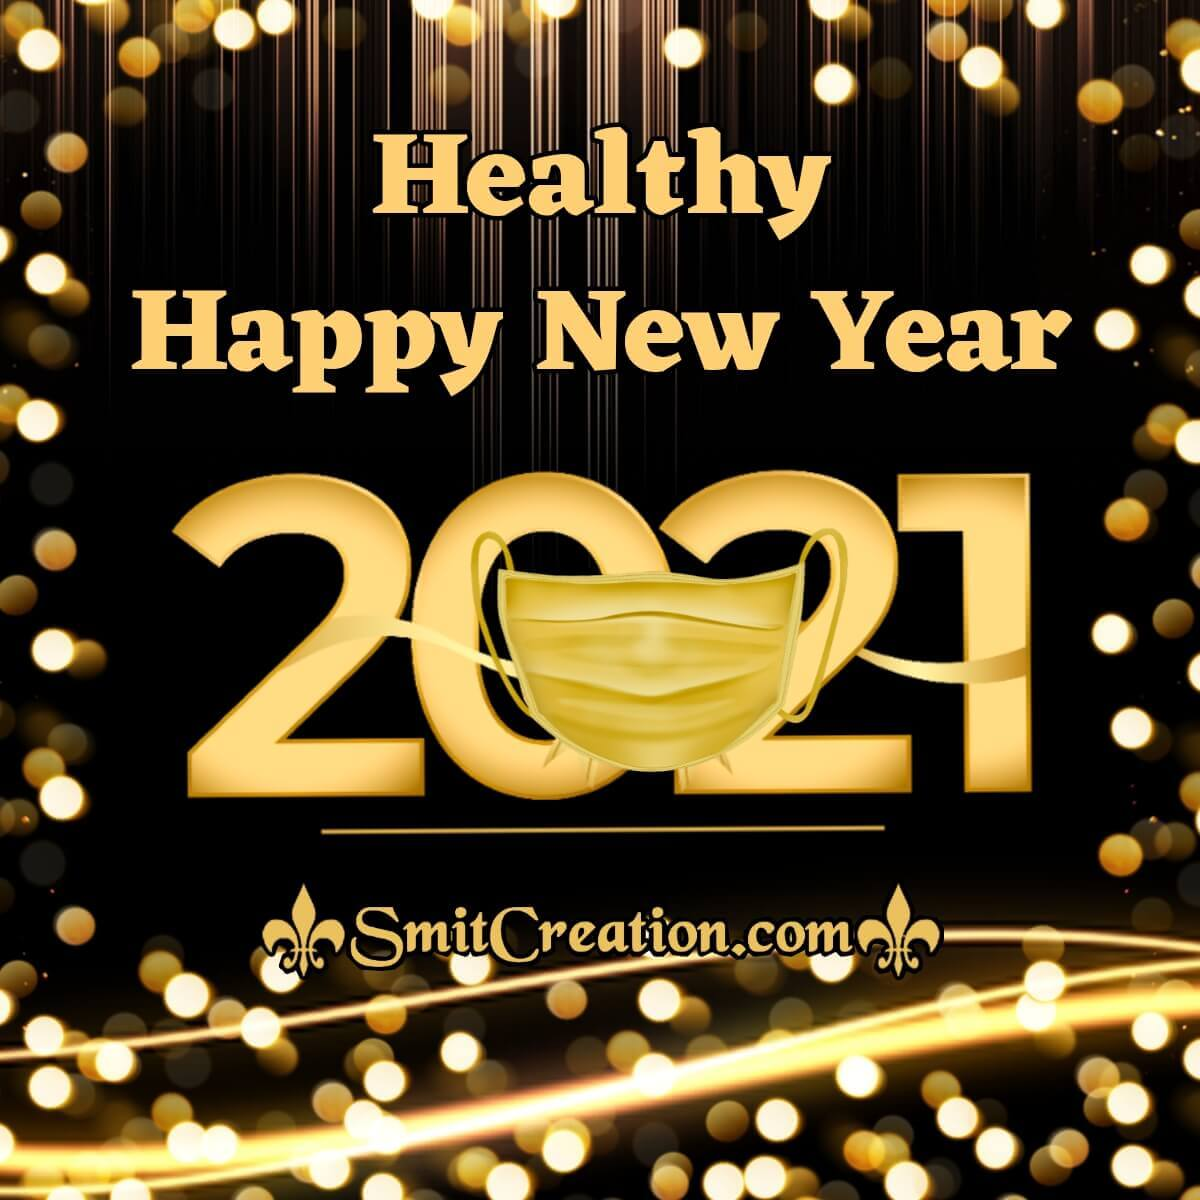 Healthy Happy New Year 2021